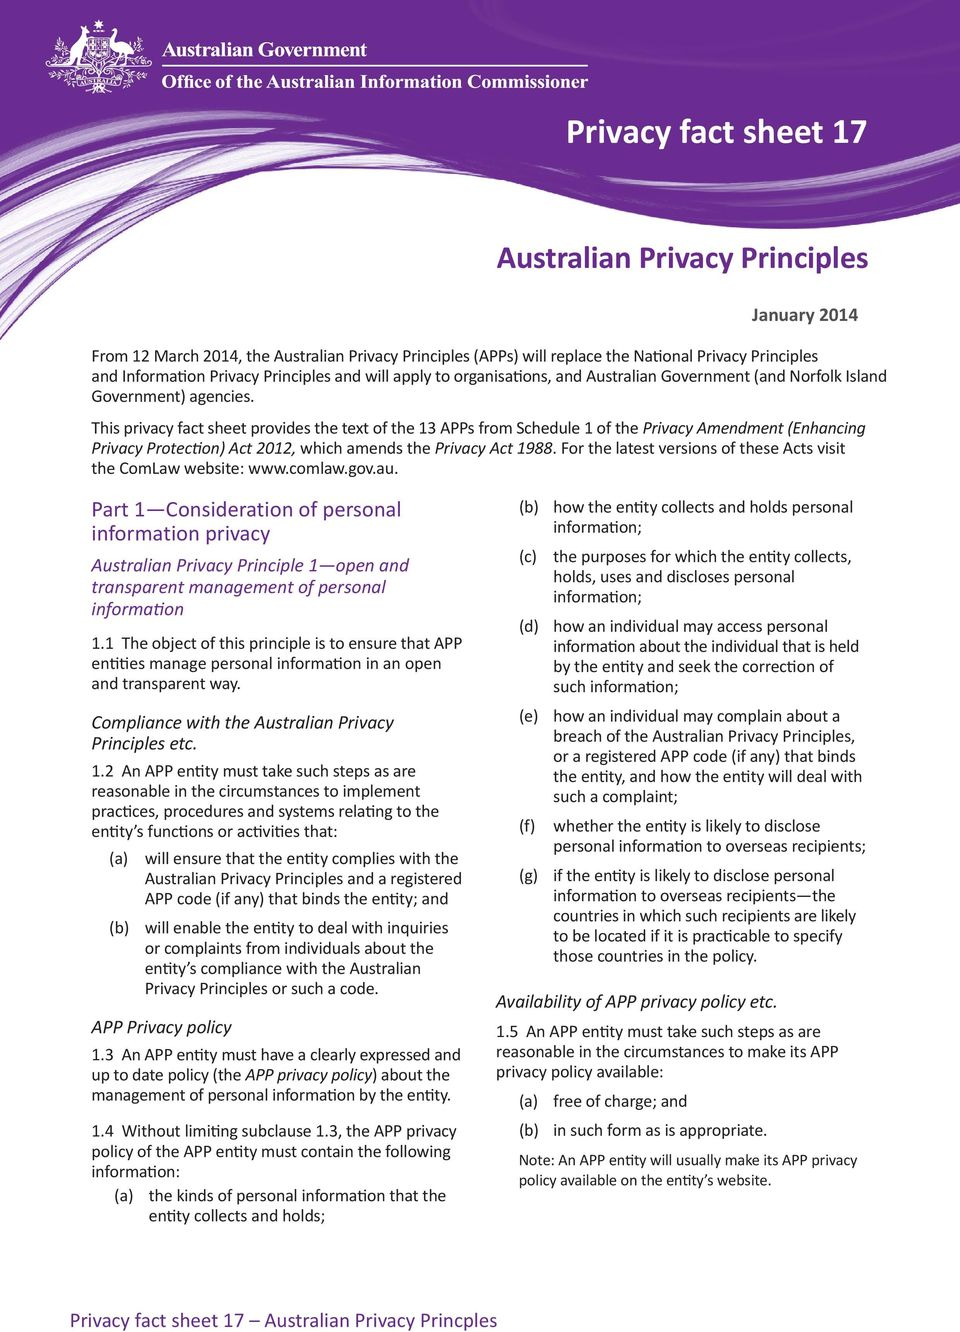 This privacy fact sheet provides the text of the 13 APPs from Schedule 1 of the Privacy Amendment (Enhancing Privacy Protection) Act 2012, which amends the Privacy Act 1988.